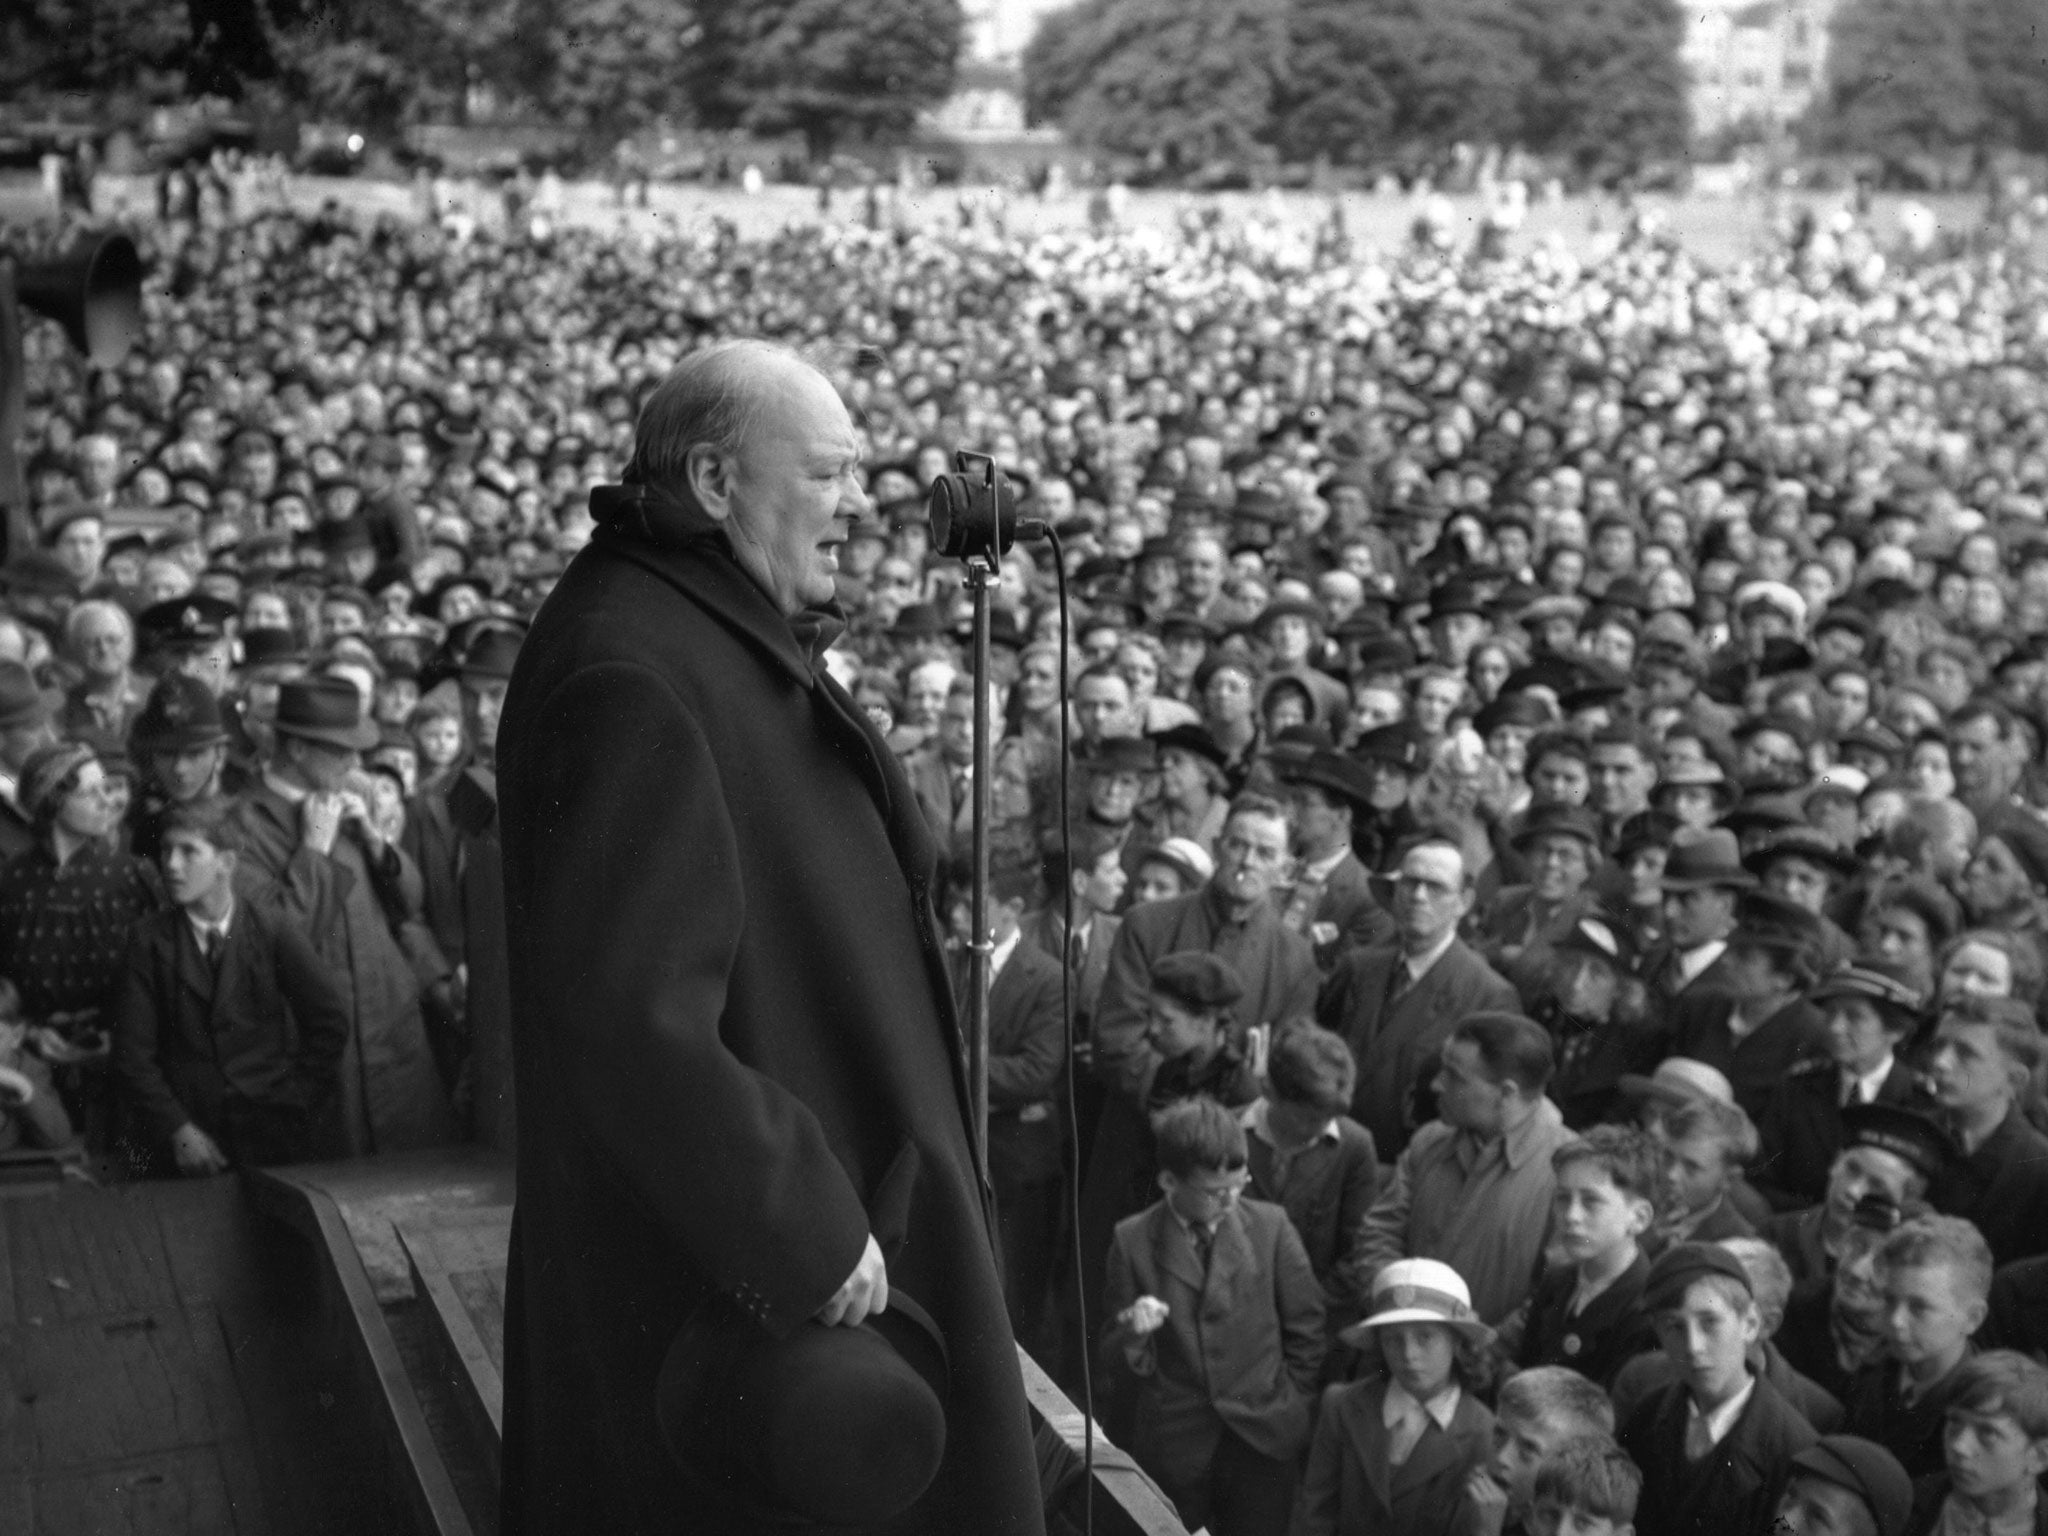 winston churchill accusations of anti semitism economic  winston churchill accusations of anti semitism economic inexperience and the blunt refusal that led to the deaths of millions the independent